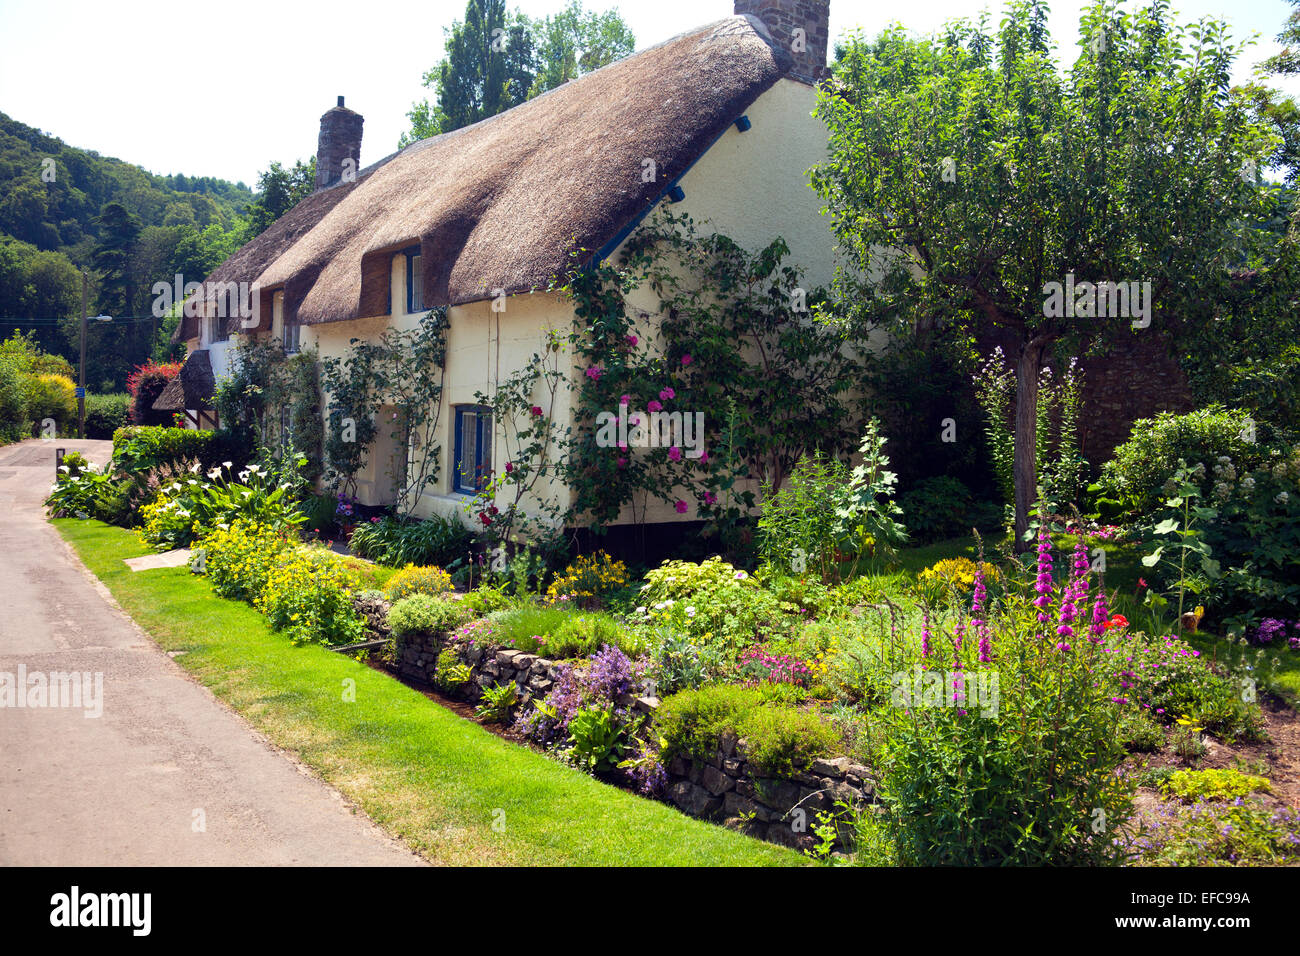 A picturesque thatched cottage and garden in Dunster, Somerset, England, UK - Stock Image